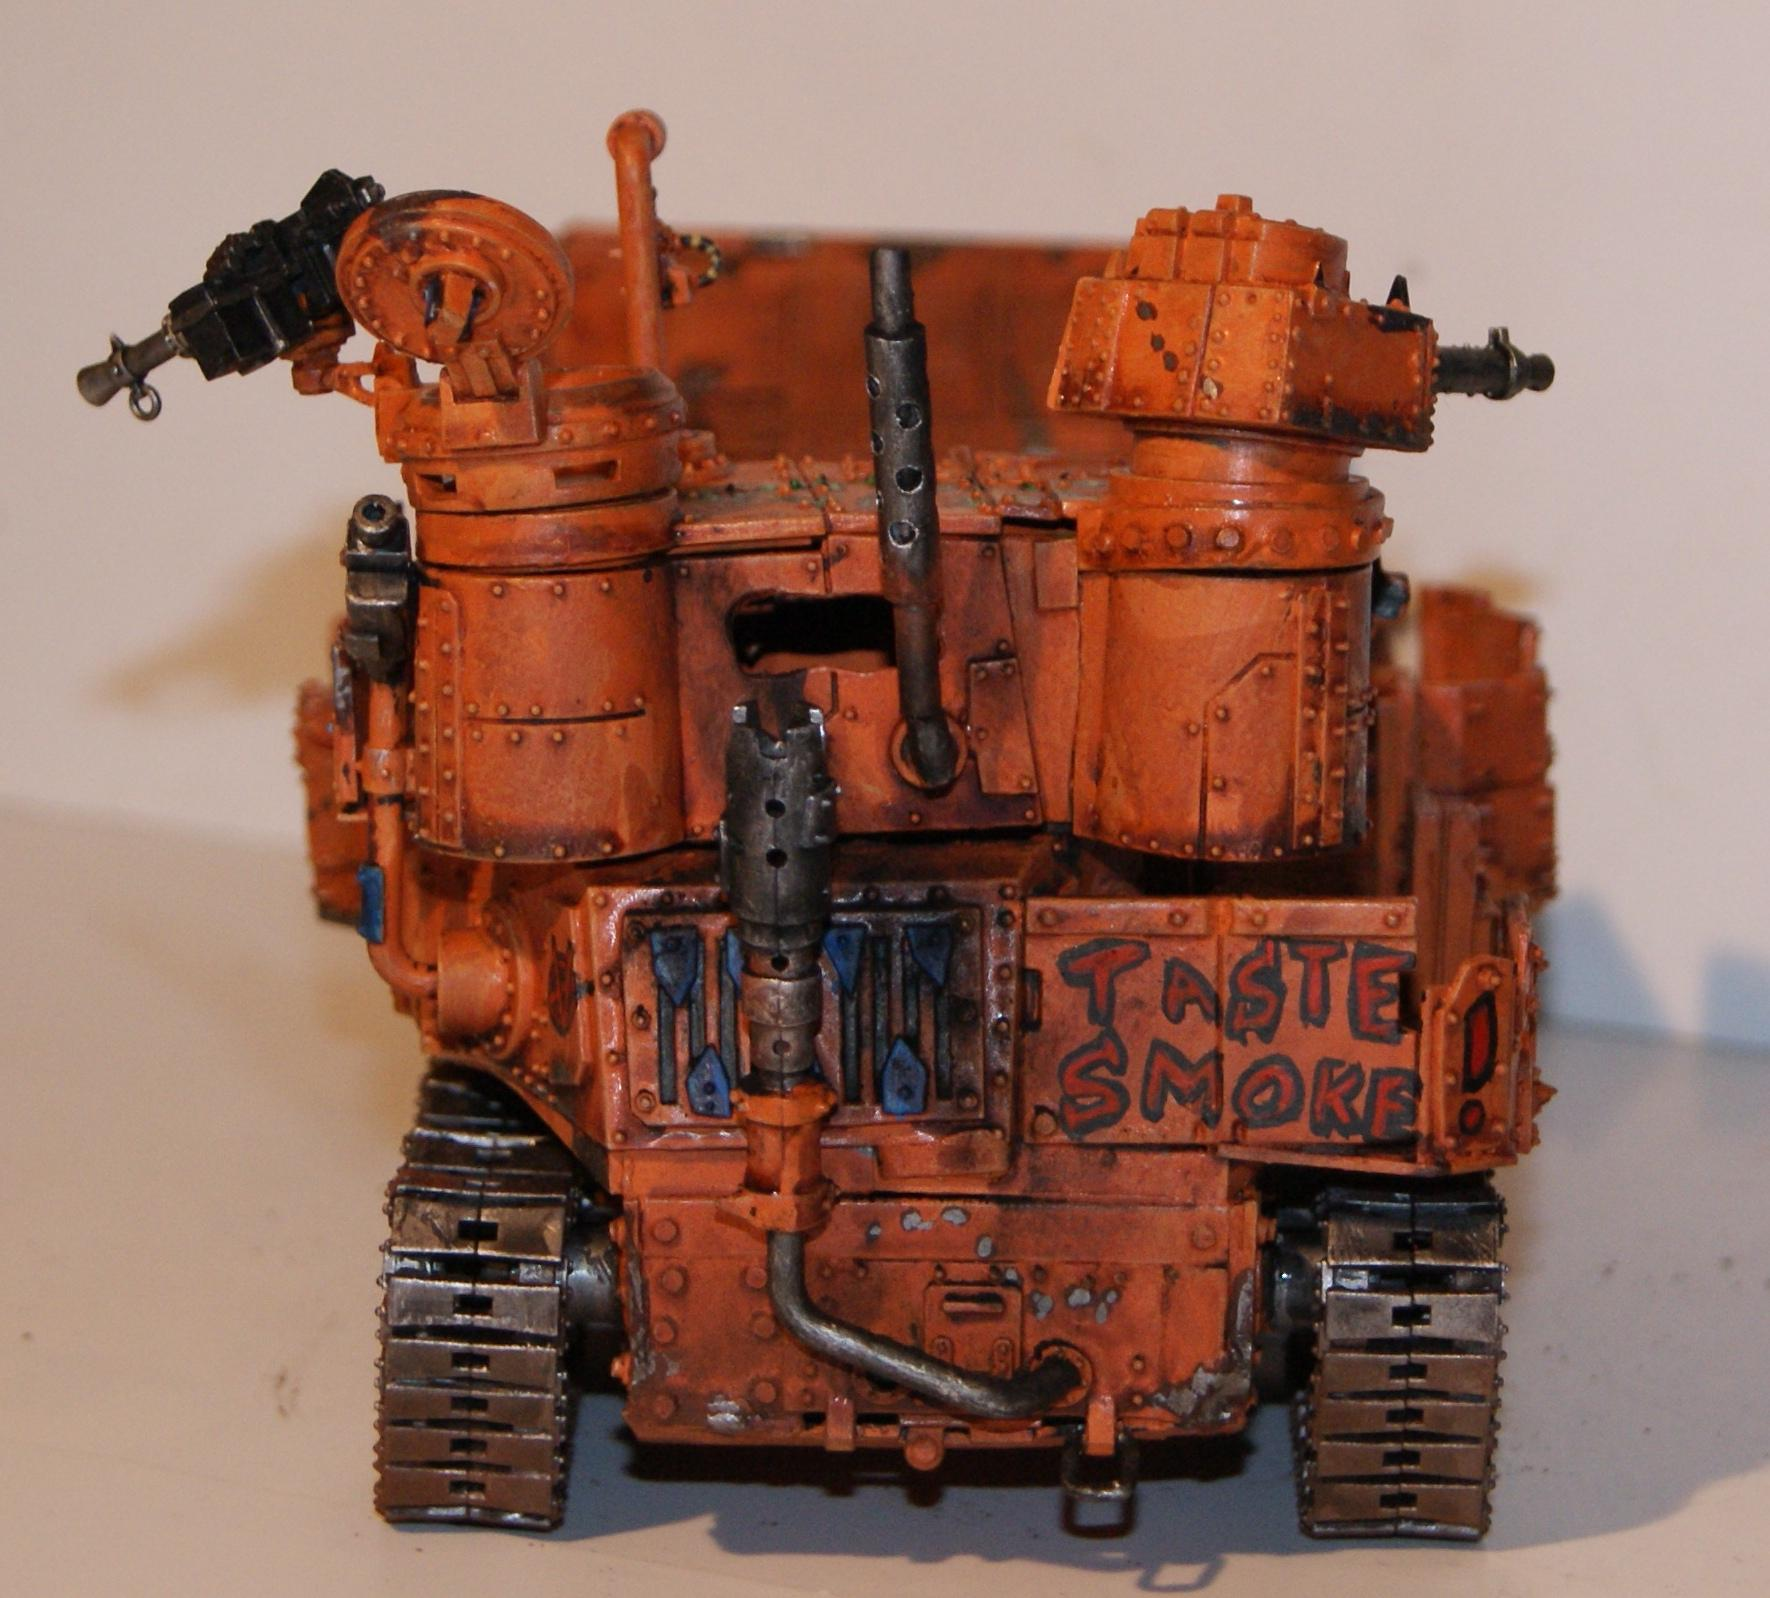 Battlewagon, Conversion, Grot Rebellion, Grot Rebels, Warhammer 40,000, Work In Progress